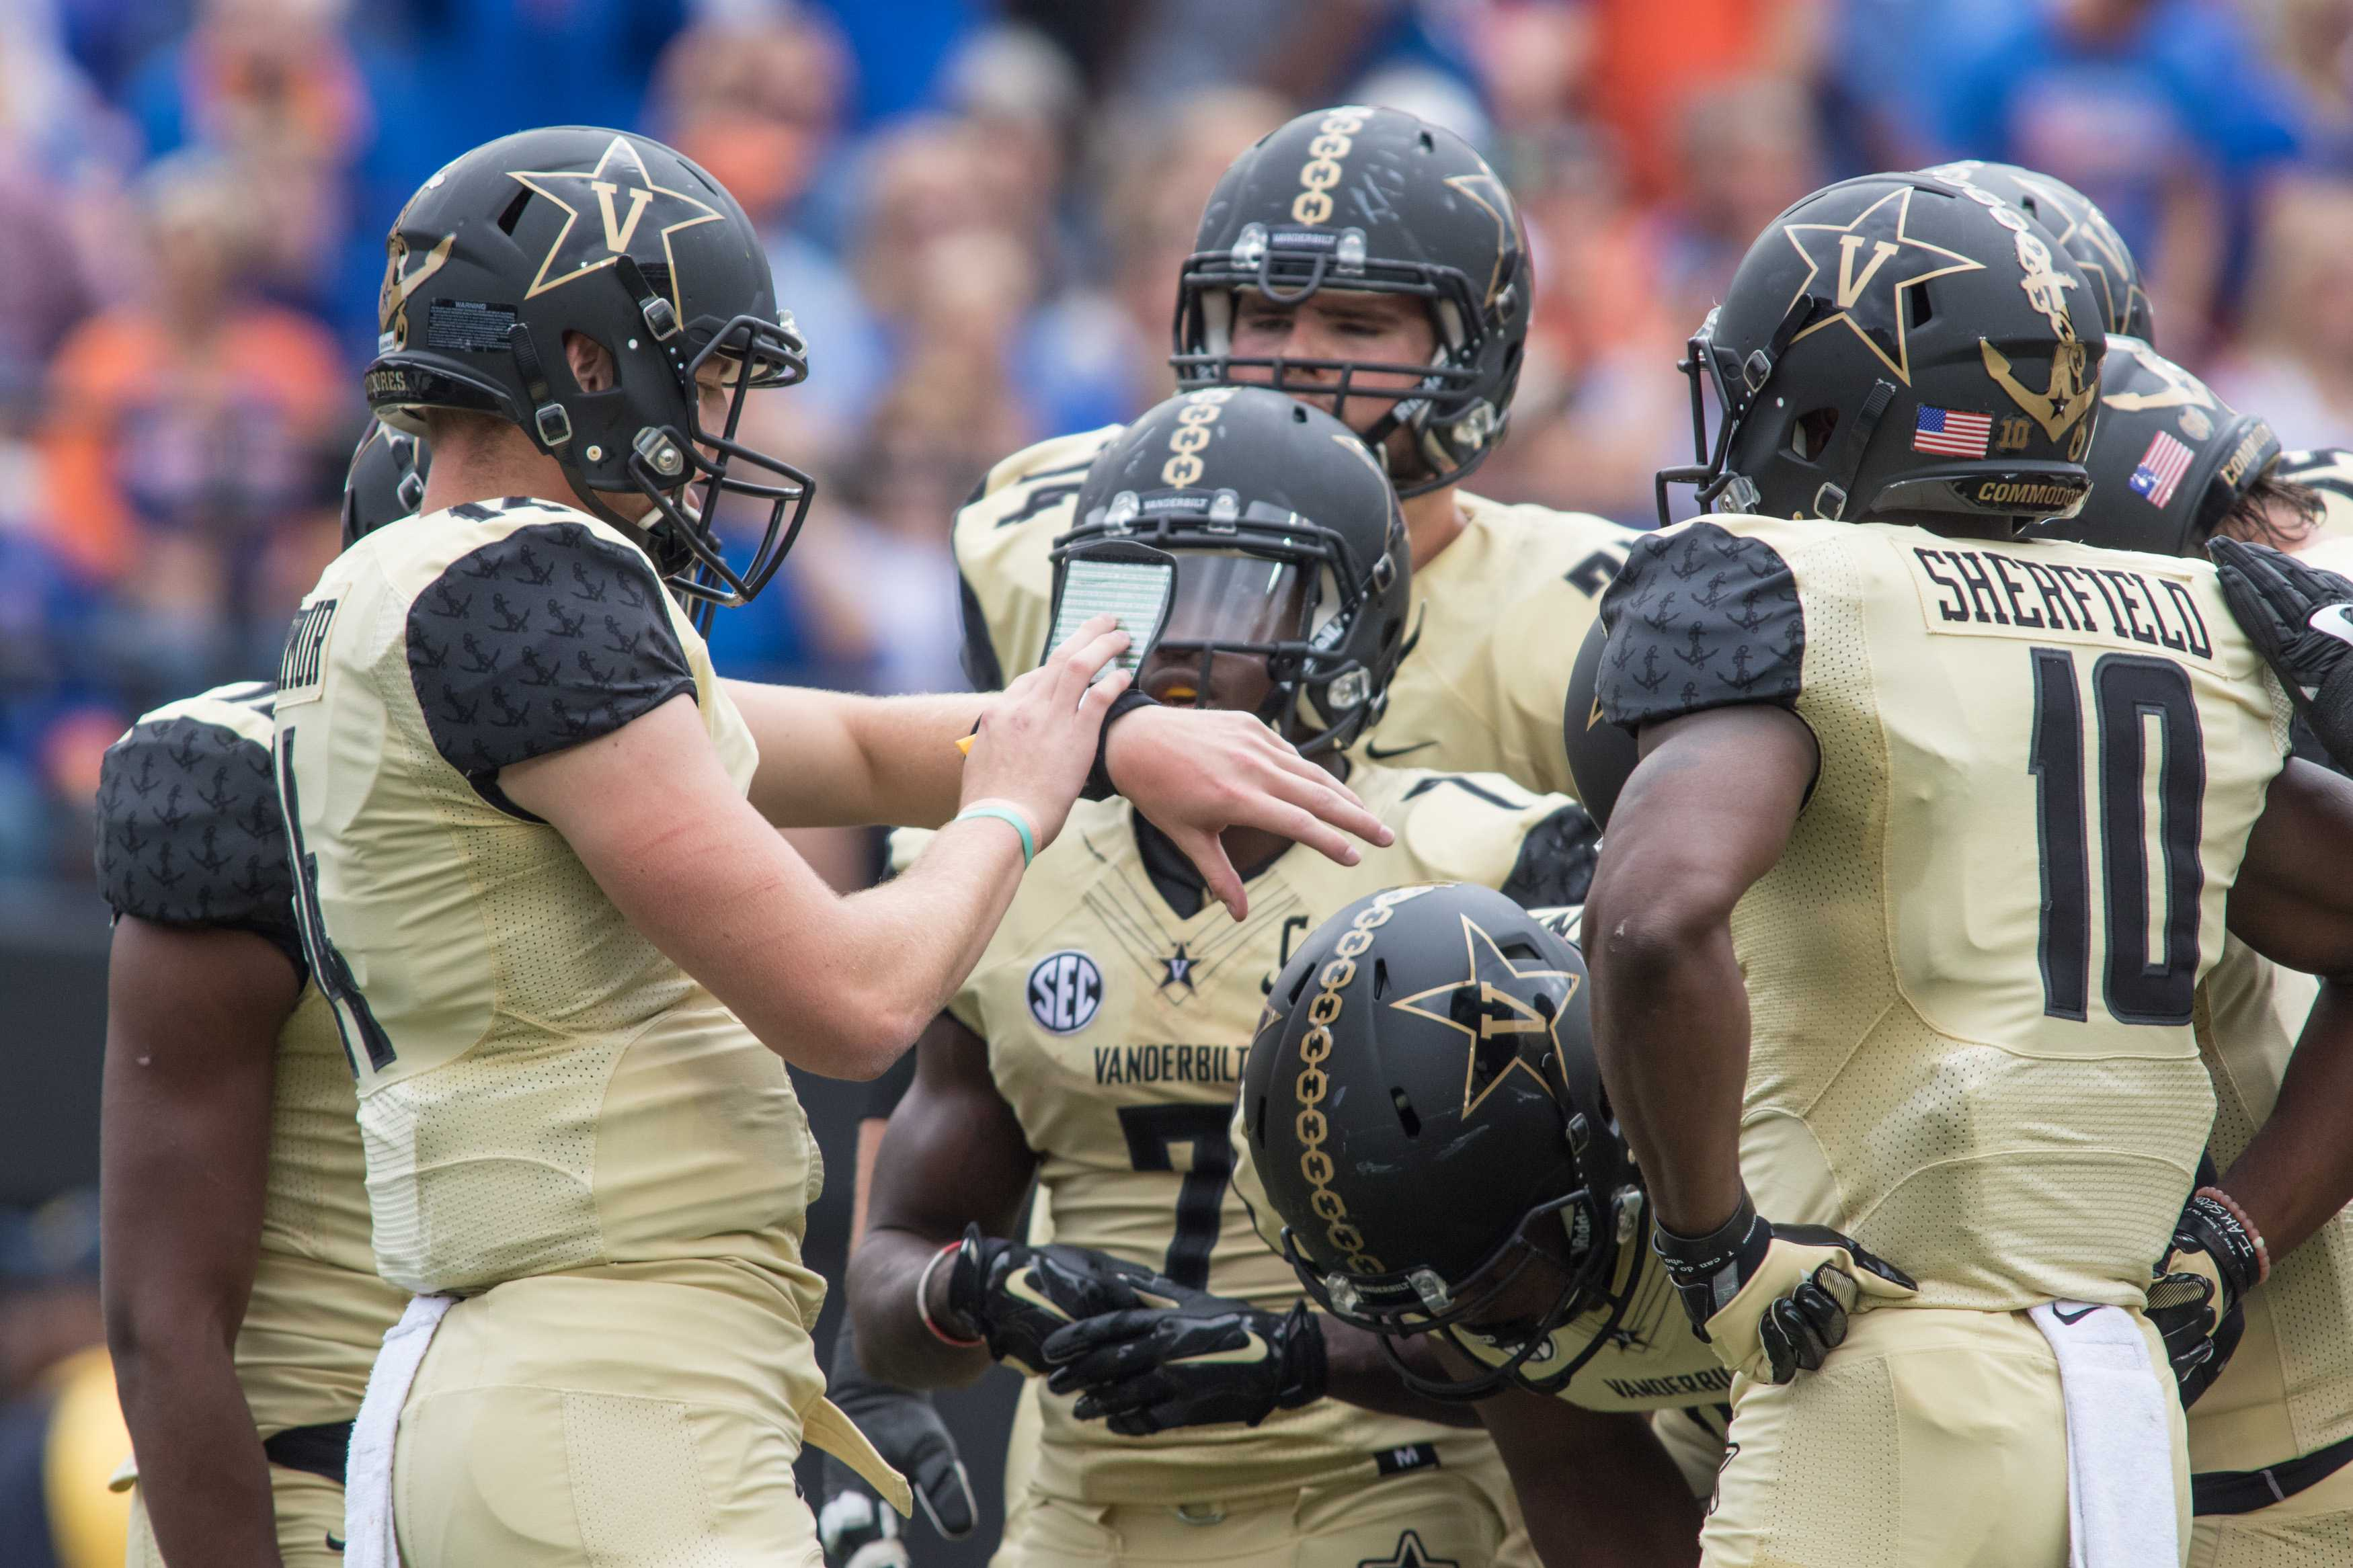 Three Matchups to Watch: Vanderbilt at Florida